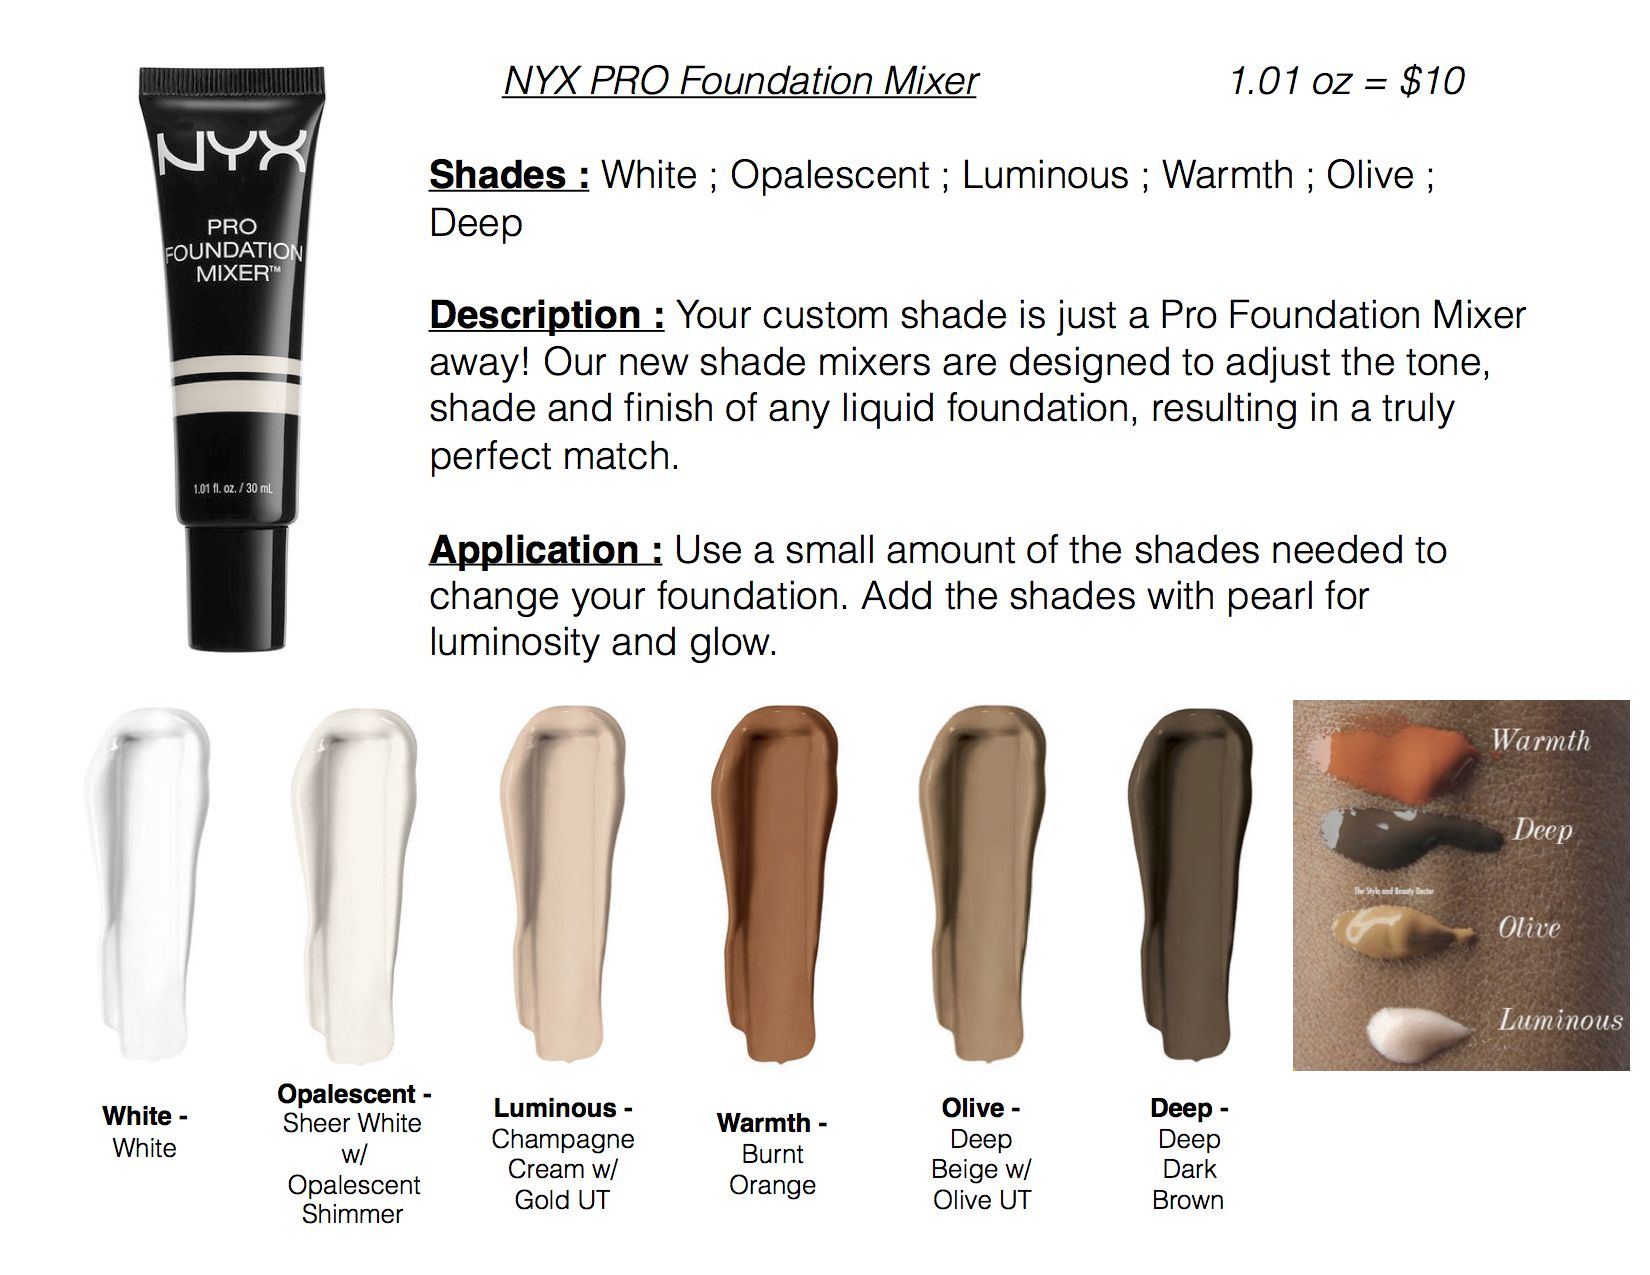 nyx pro foundation mixer makeup swatches pinterest. Black Bedroom Furniture Sets. Home Design Ideas